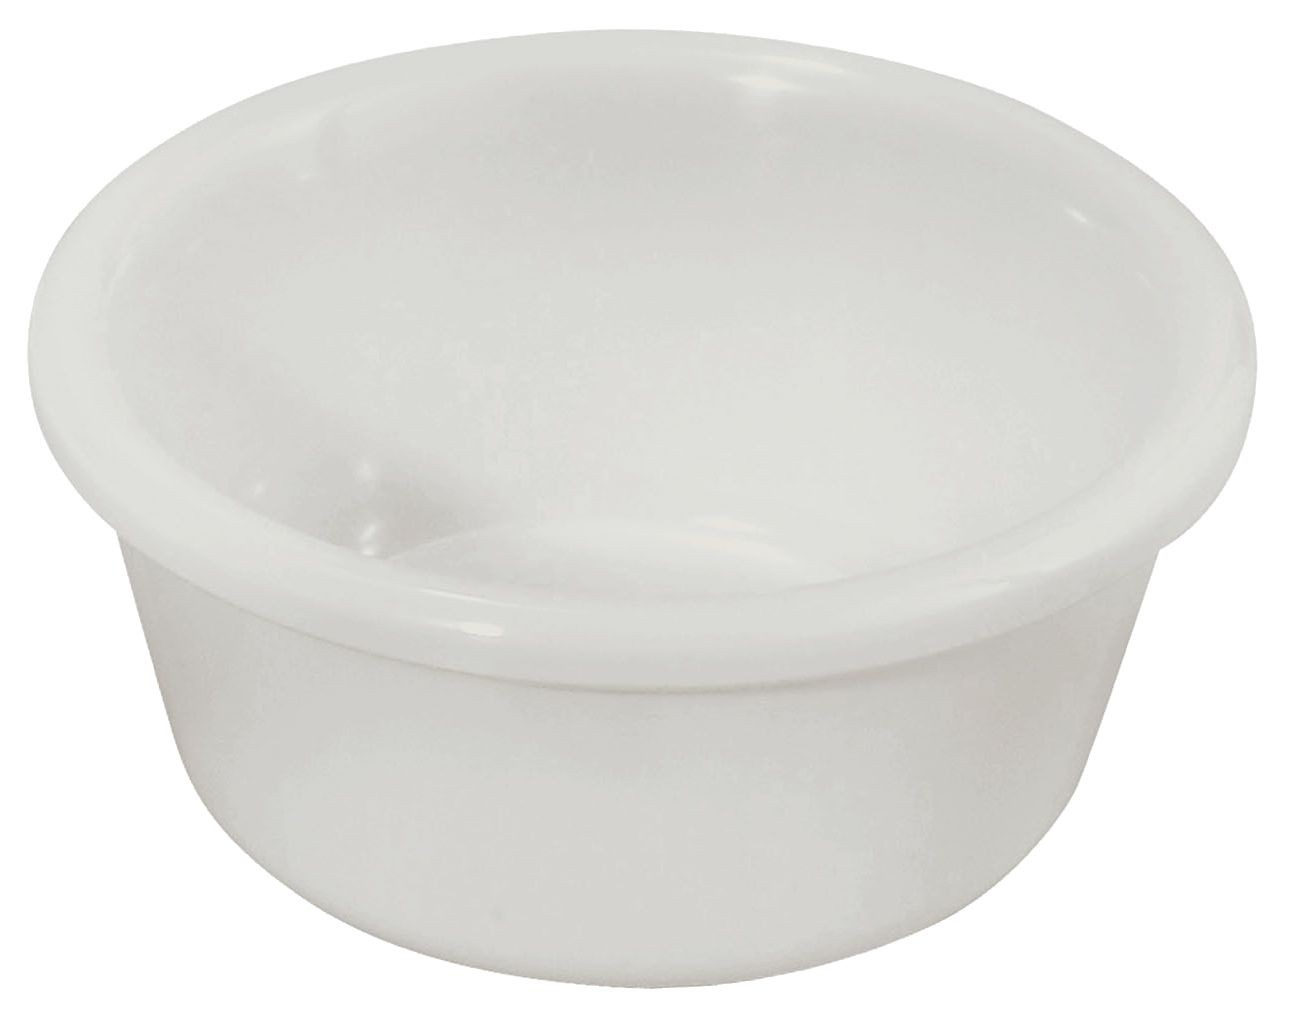 6 oz. Plain Plastic Ramekin (White)